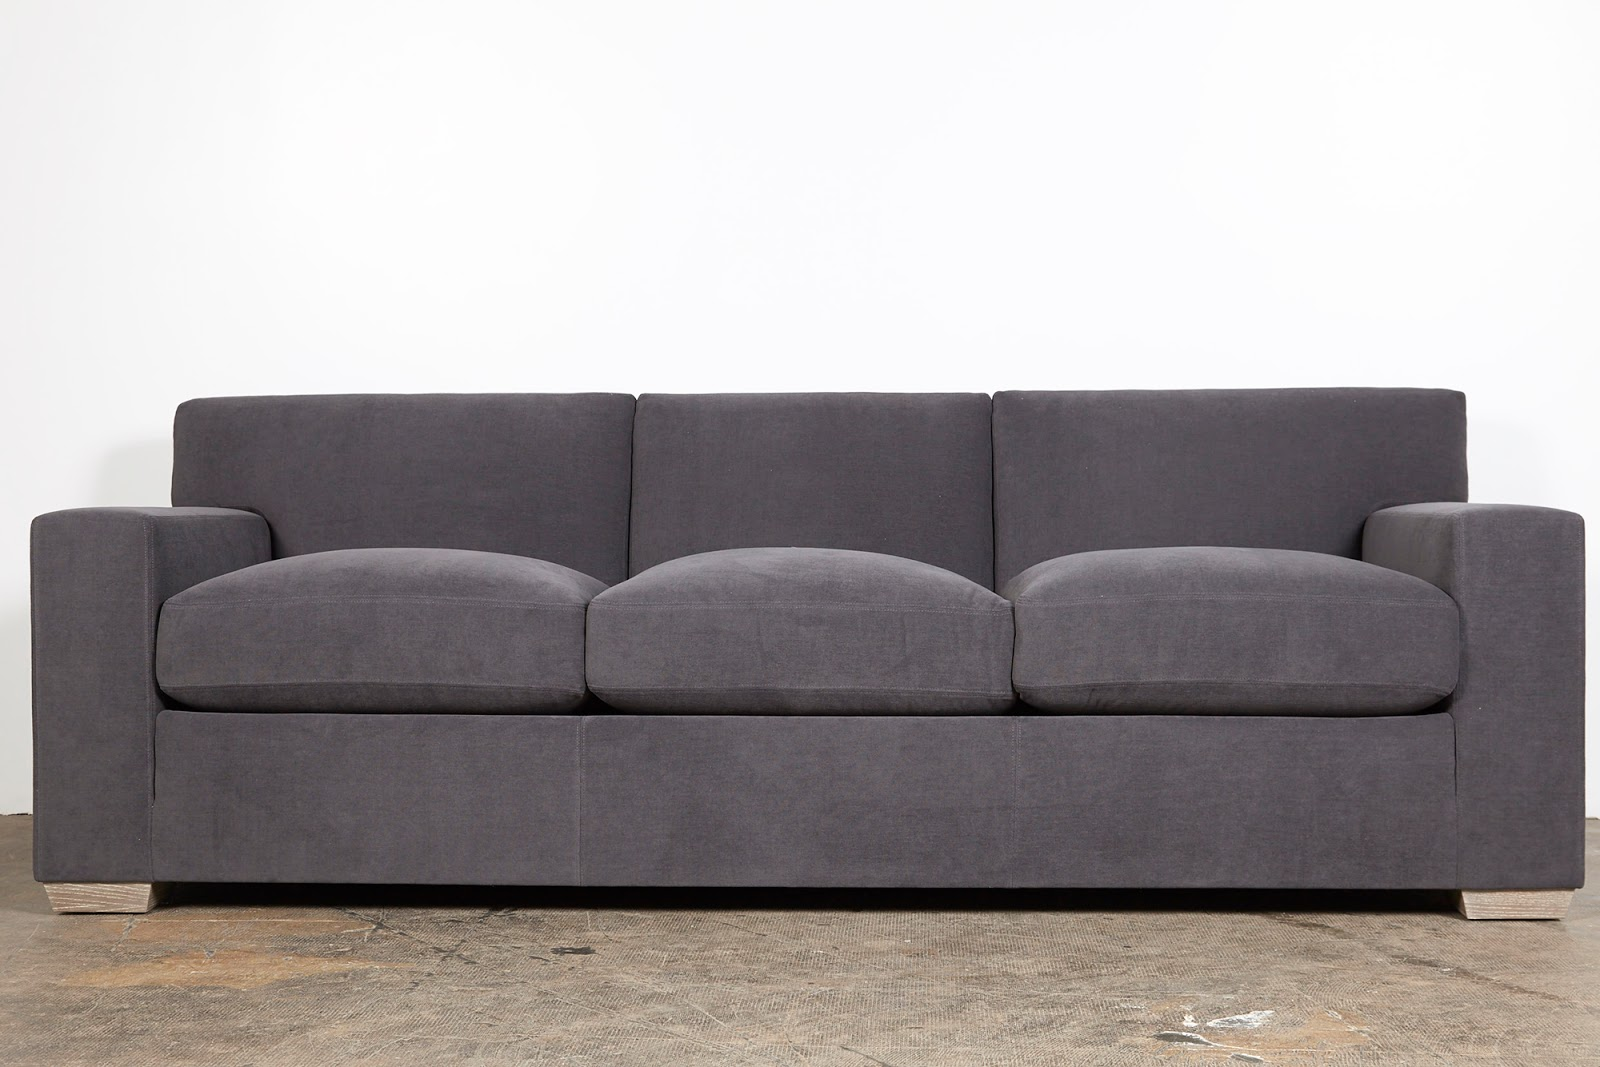 A Perennial Favorite Of Both Our Clients And Work Is The Jmf Sofa This Style Never Disoints Why Mess With Good Thing Right Jean Michel